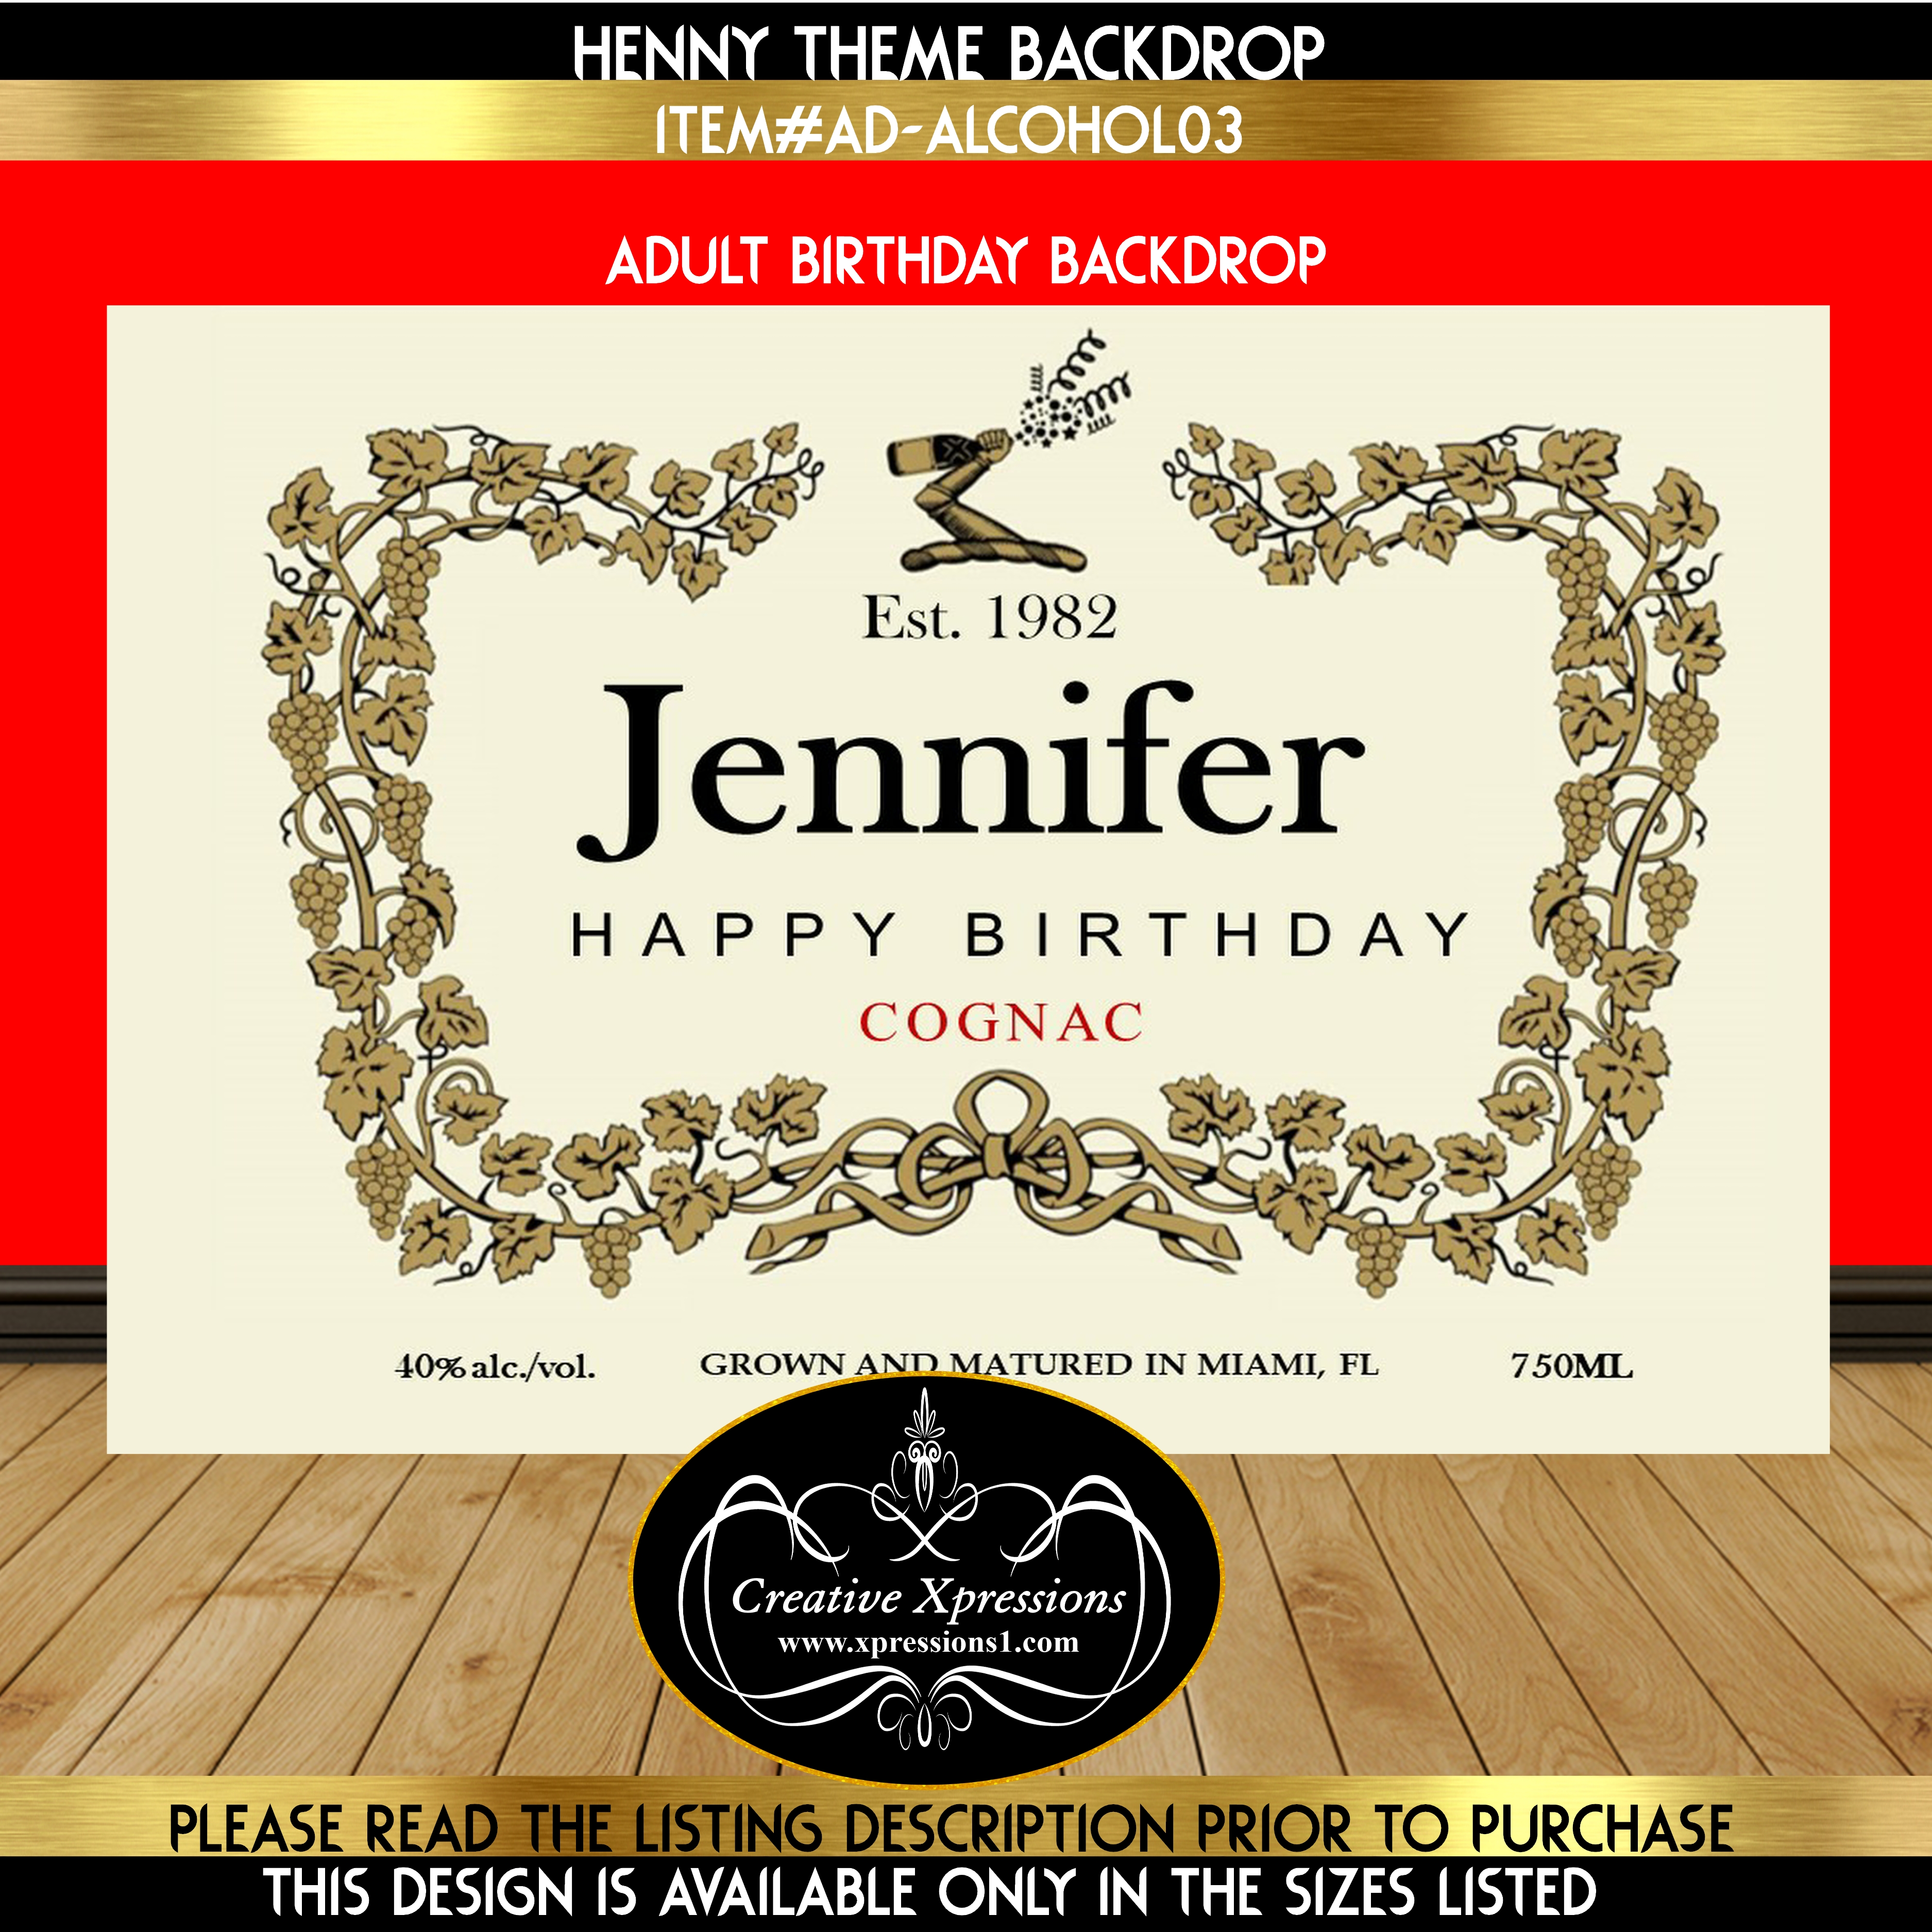 Henny Grown and Matured Birthday Backdrop